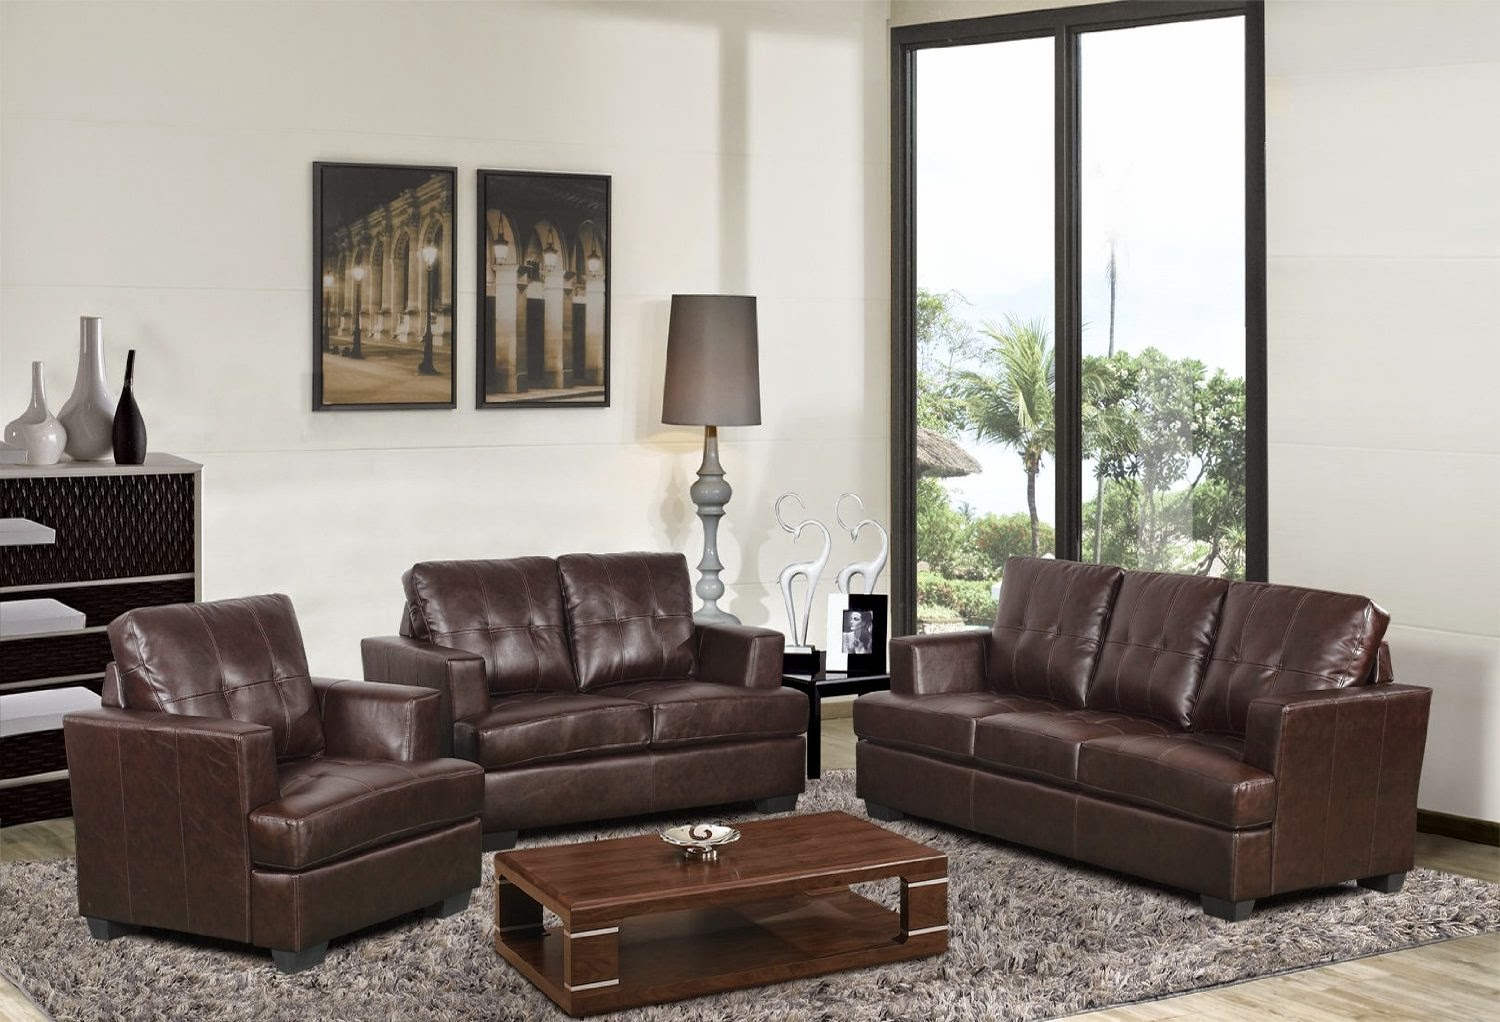 brown leather couch brown leather couch set. Black Bedroom Furniture Sets. Home Design Ideas